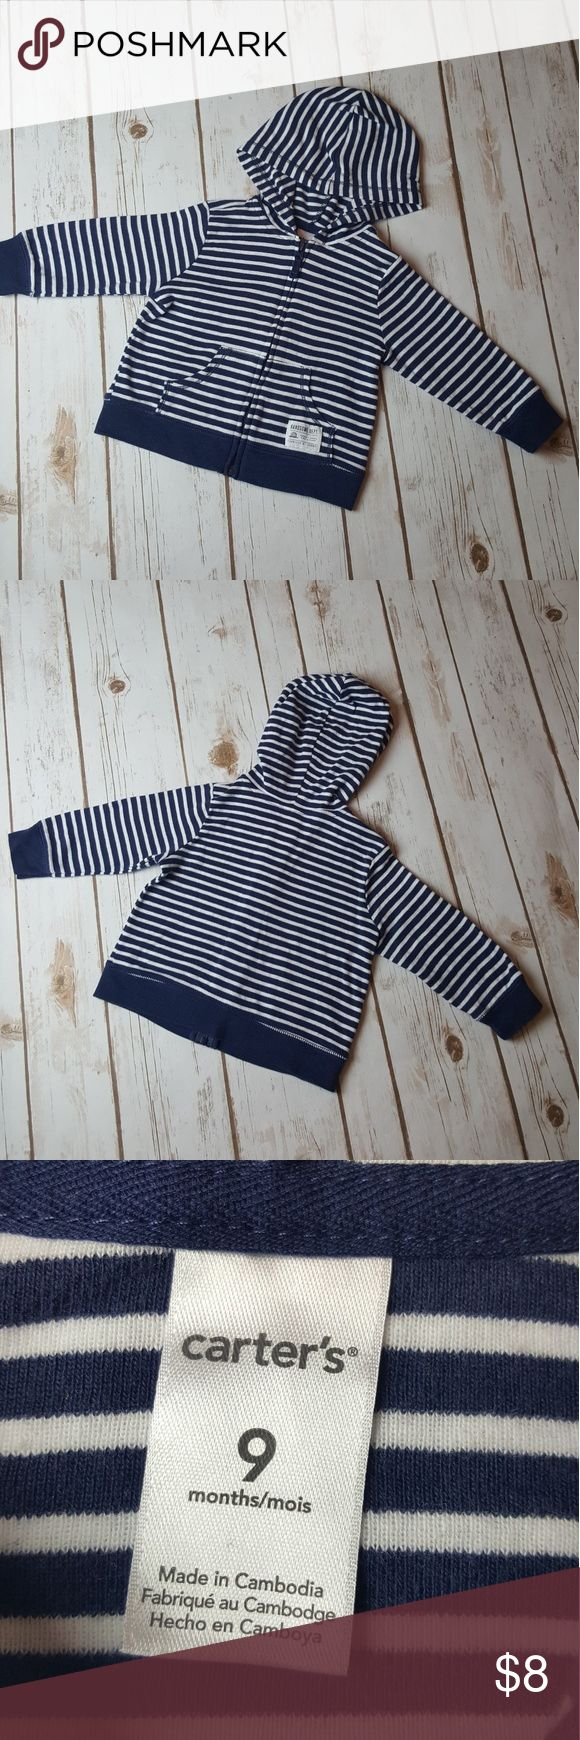 BUNDLE Carter's Jacket and pants 9M Navy blue and white striped zip up jacket with hood. 9M  2 Carter's Pants 9 Months 1 - Navy Blue 1- Navy blue & white striped Carter's Matching Sets